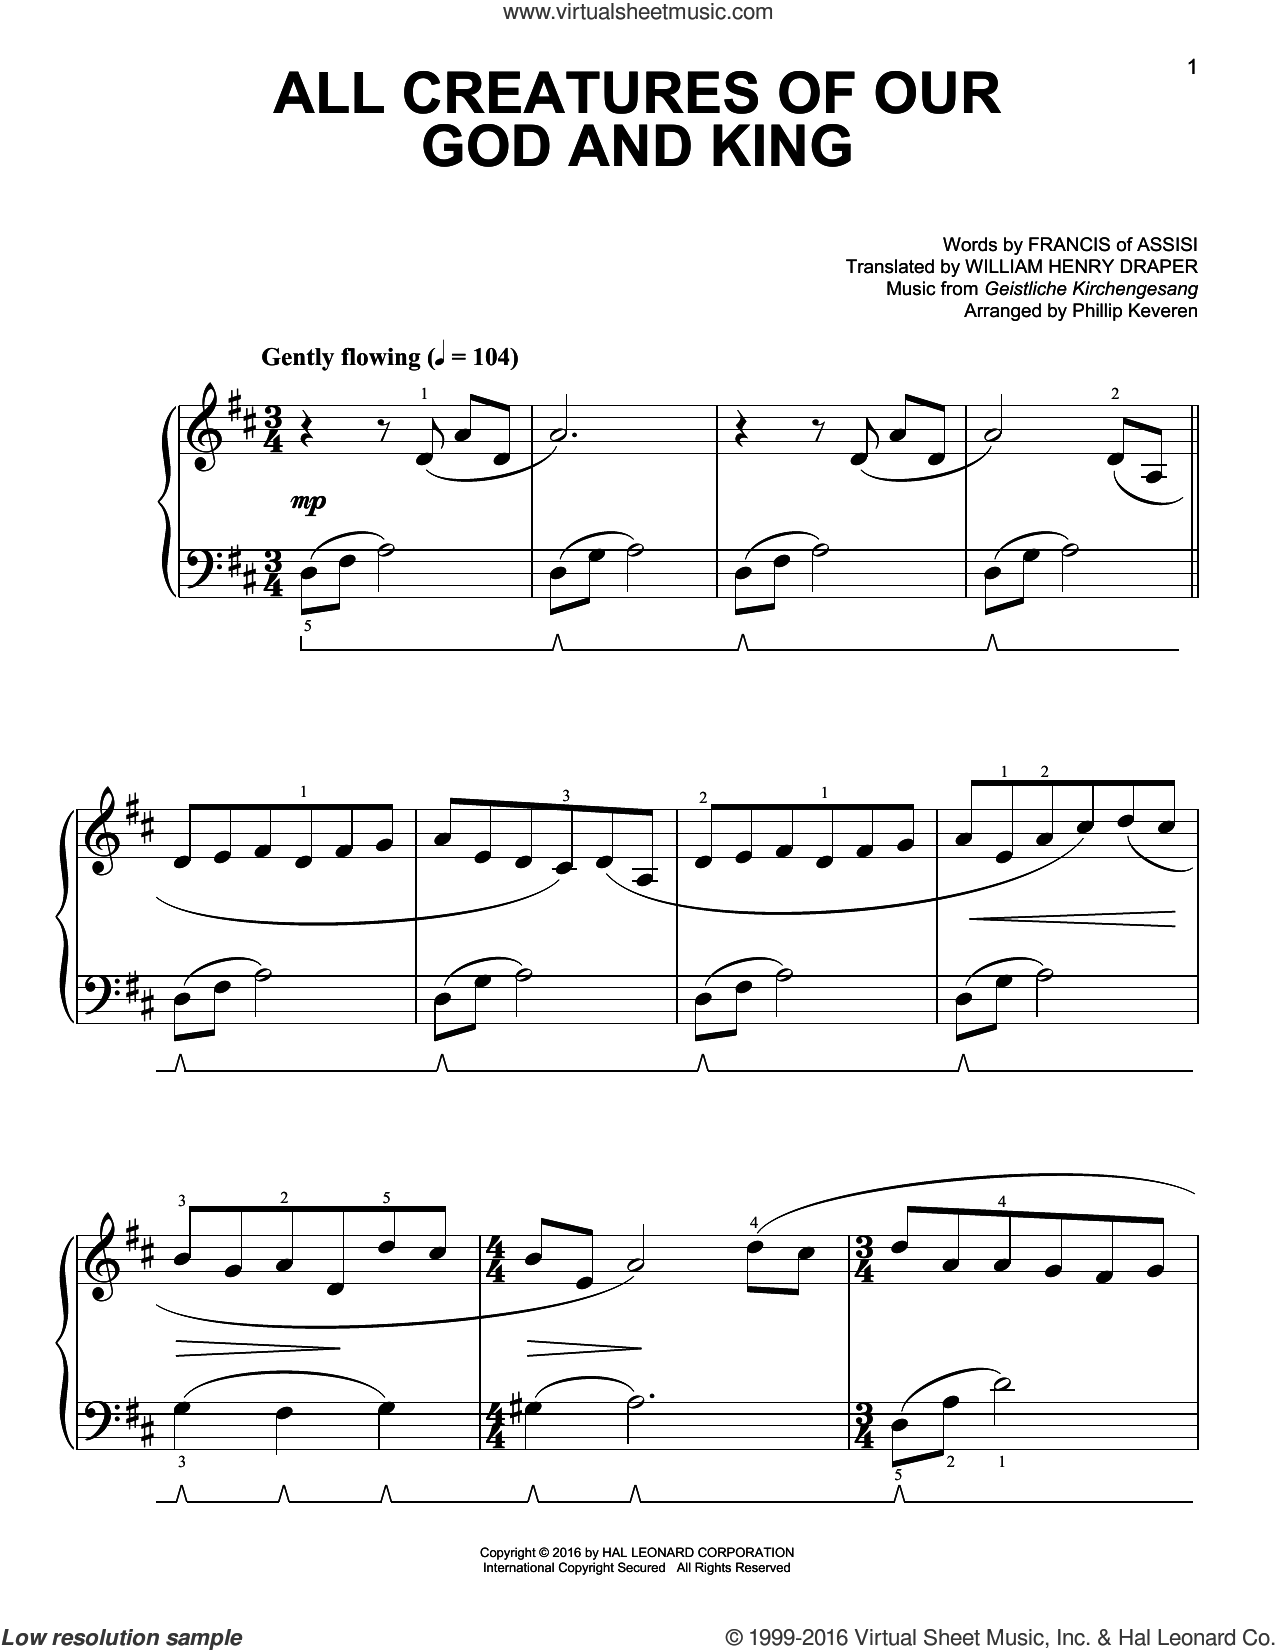 All Creatures Of Our God And King [Classical version] (arr. Phillip Keveren) sheet music for piano solo by Francis Of Assisi, Phillip Keveren, Geistliche Kirchengesang and William Henry Draper, easy skill level